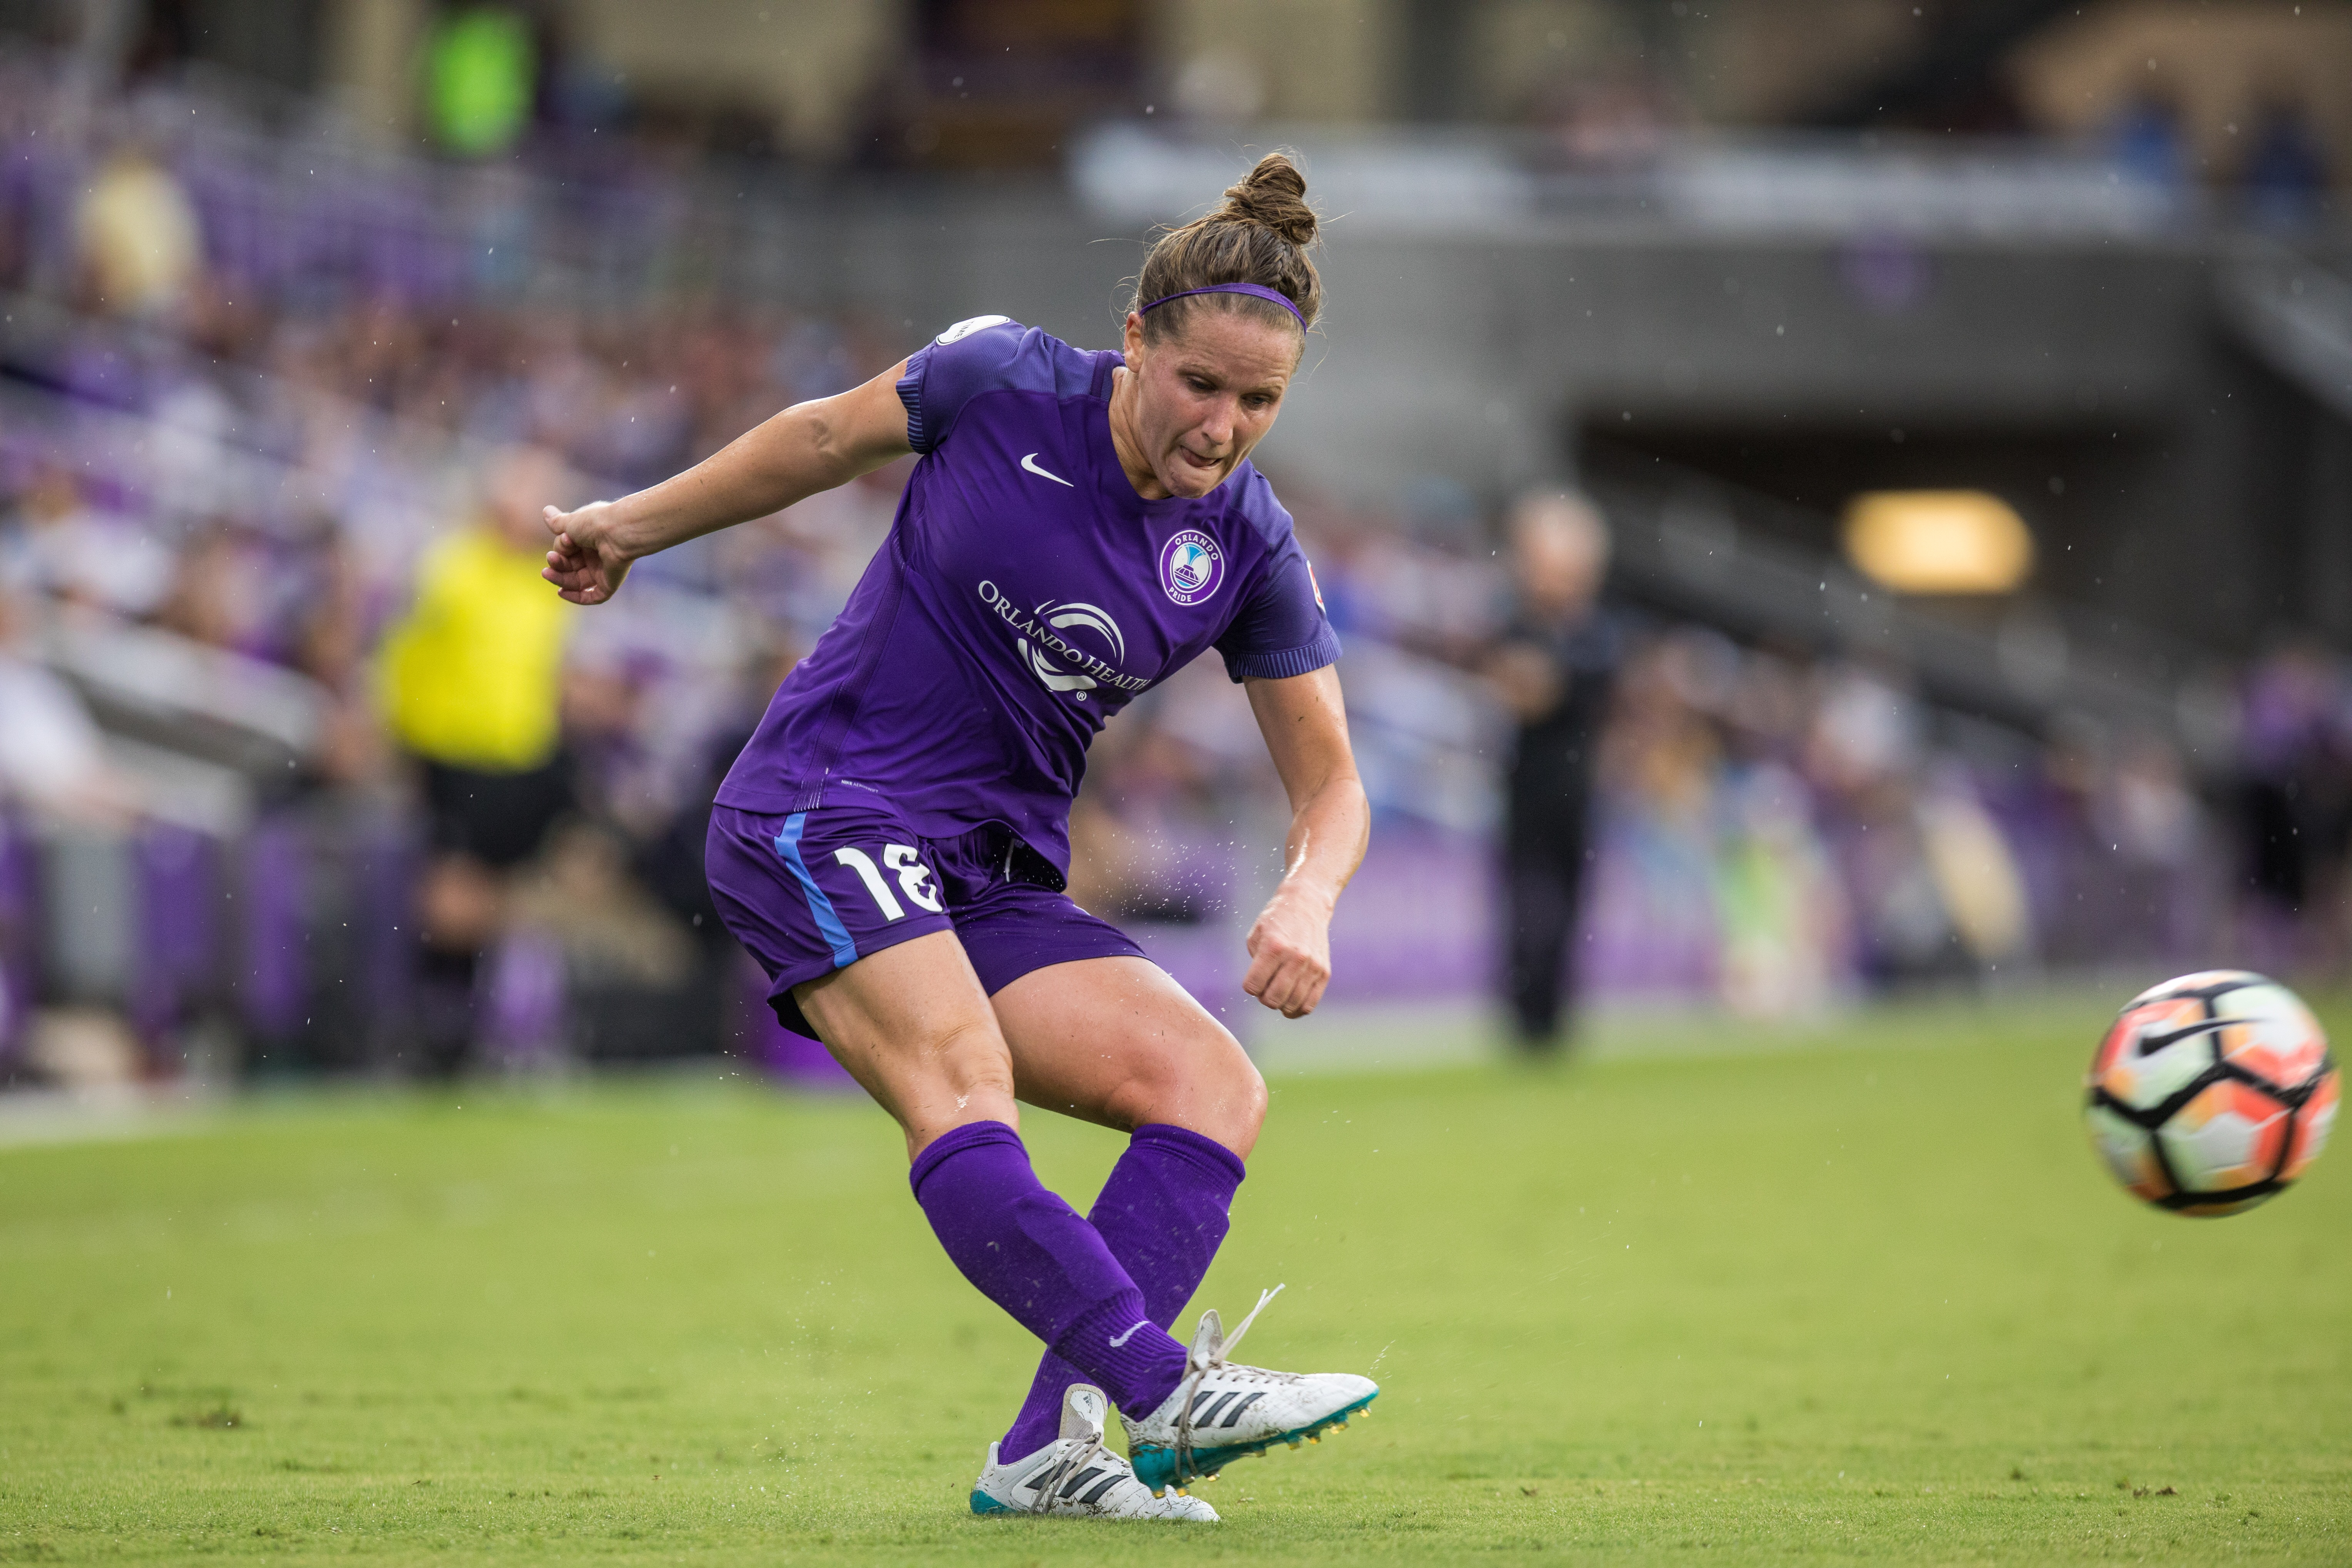 Glenside native Maddy Evans, a product of Abington High and Penn State, recently played her final game for the National Women´s Soccer League´s Orlando Pride.